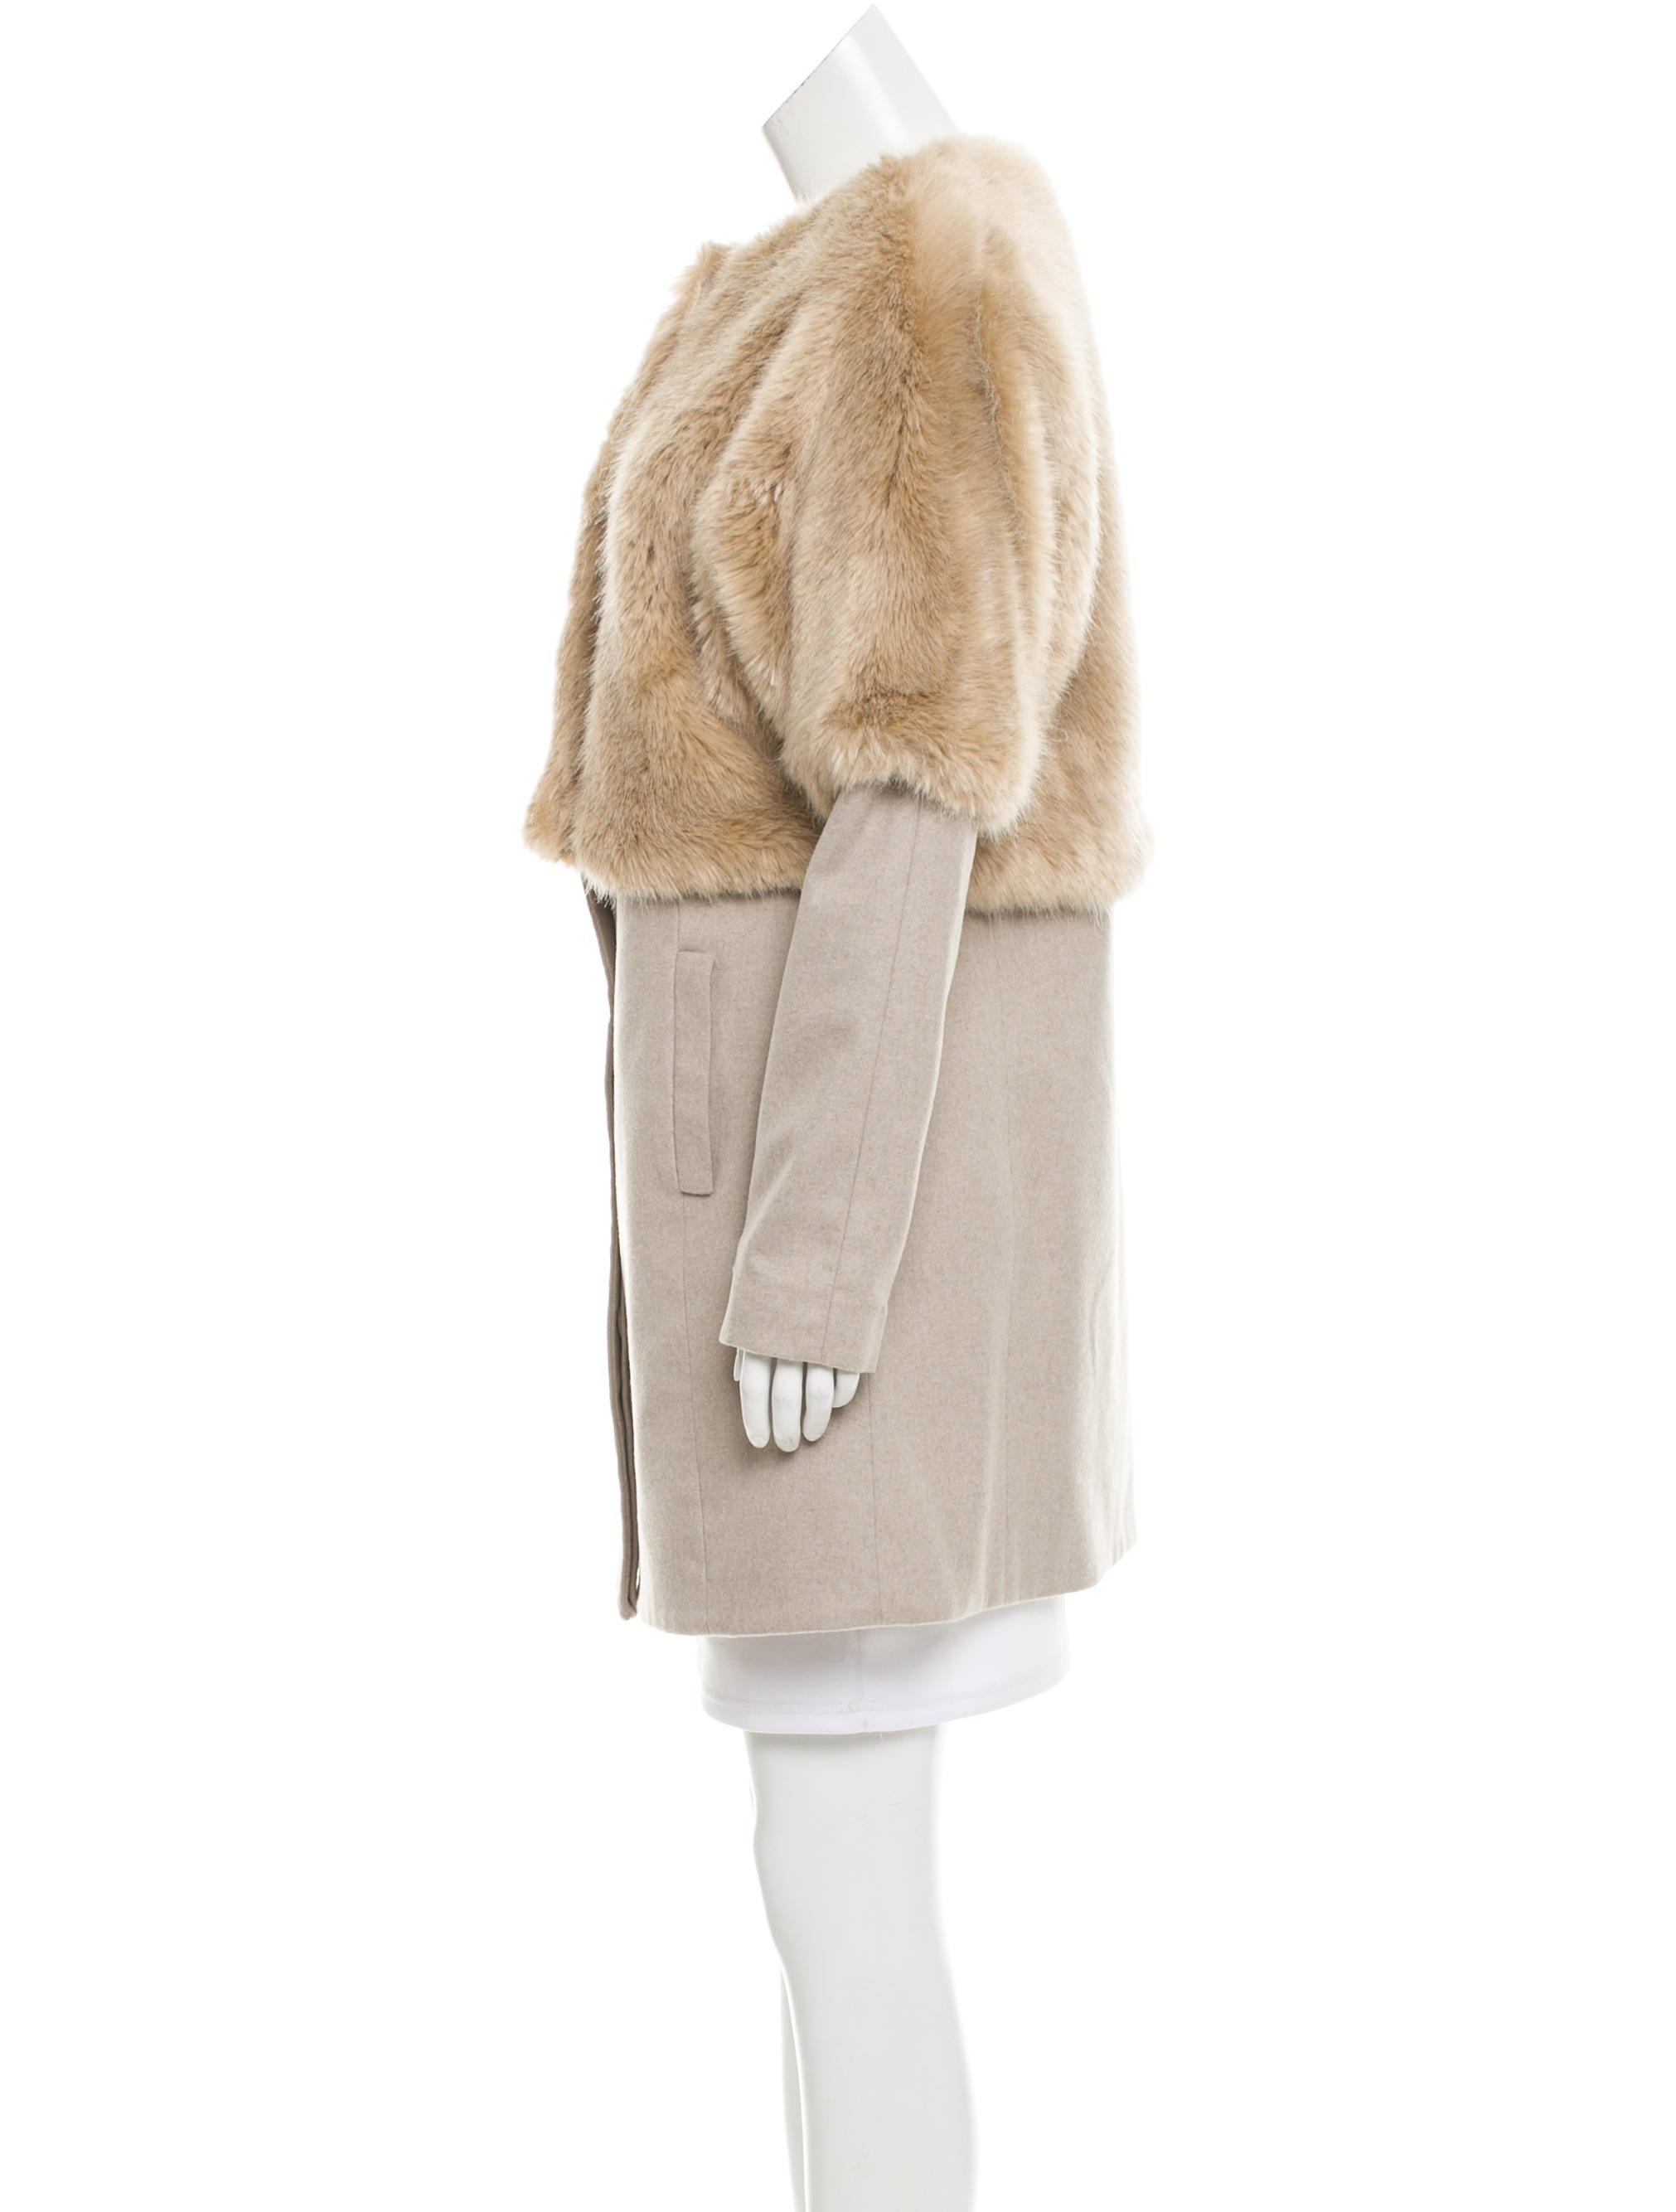 tibi faux fur convertible coat w tags clothing wti34459 the realreal. Black Bedroom Furniture Sets. Home Design Ideas